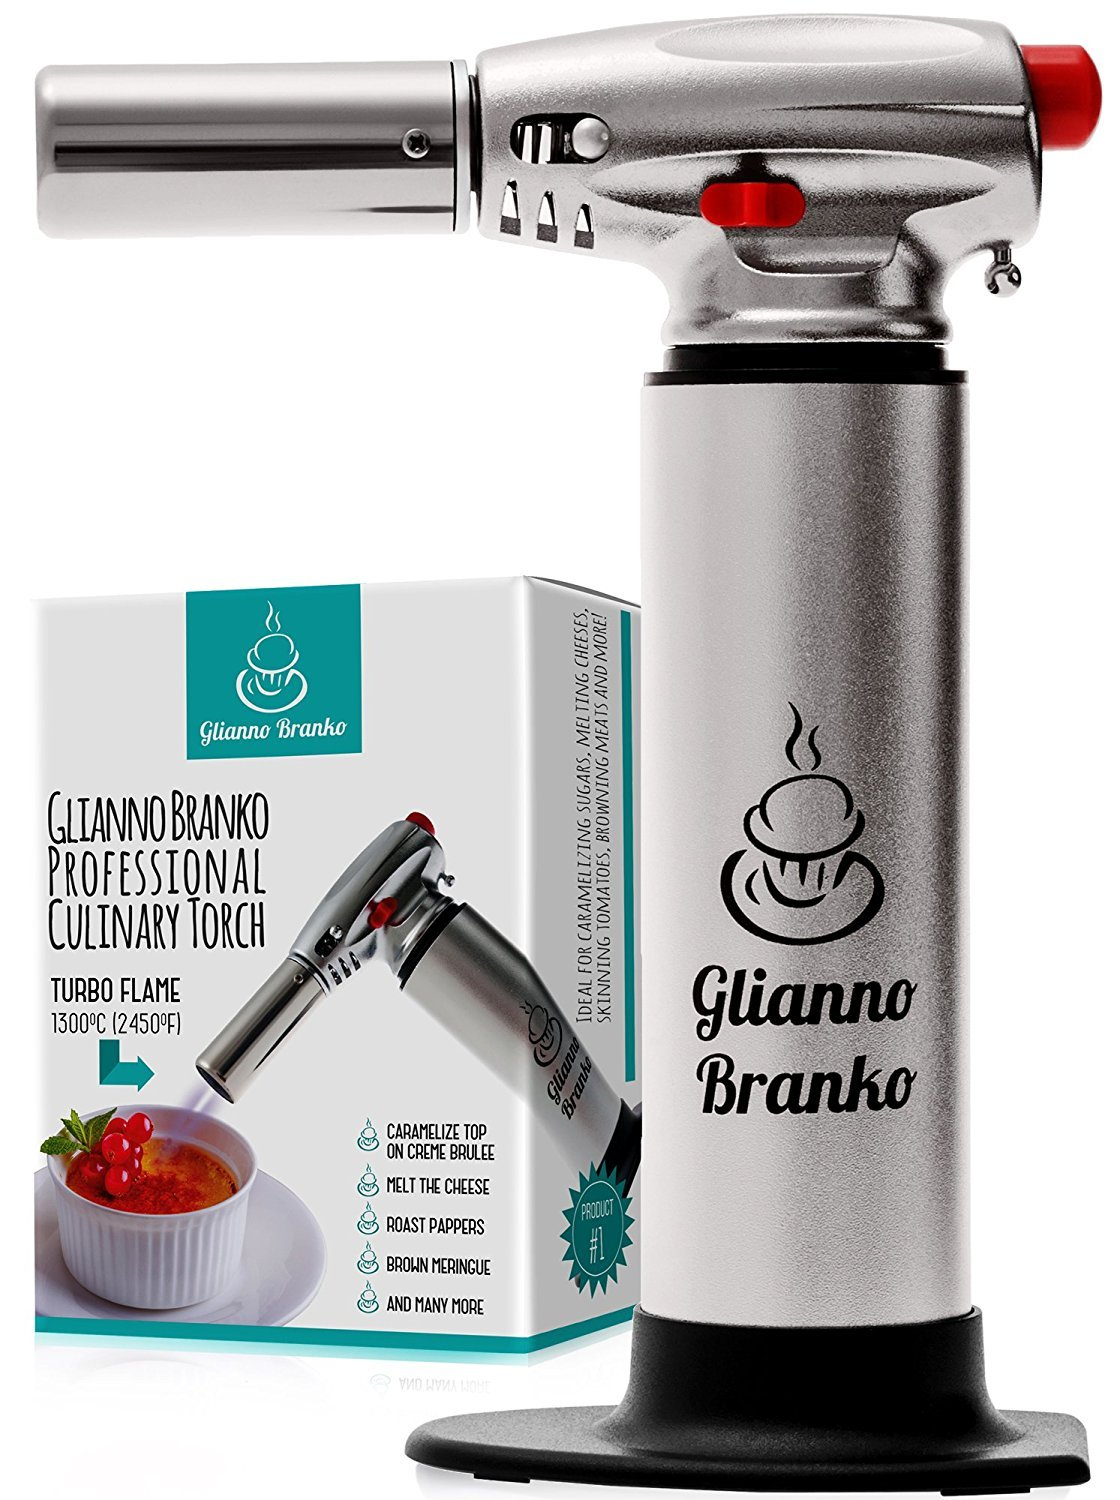 Blow Torch - Crème Brulee Torch - Best Butane Torch Lighter - Culinary Torch - Kitchen Torch - Cooking Torch - Chef Torch - Food Torch with Safety Lock Adjustable Flame - Kitchen Gifts For Woman Man Ltd. gas torch